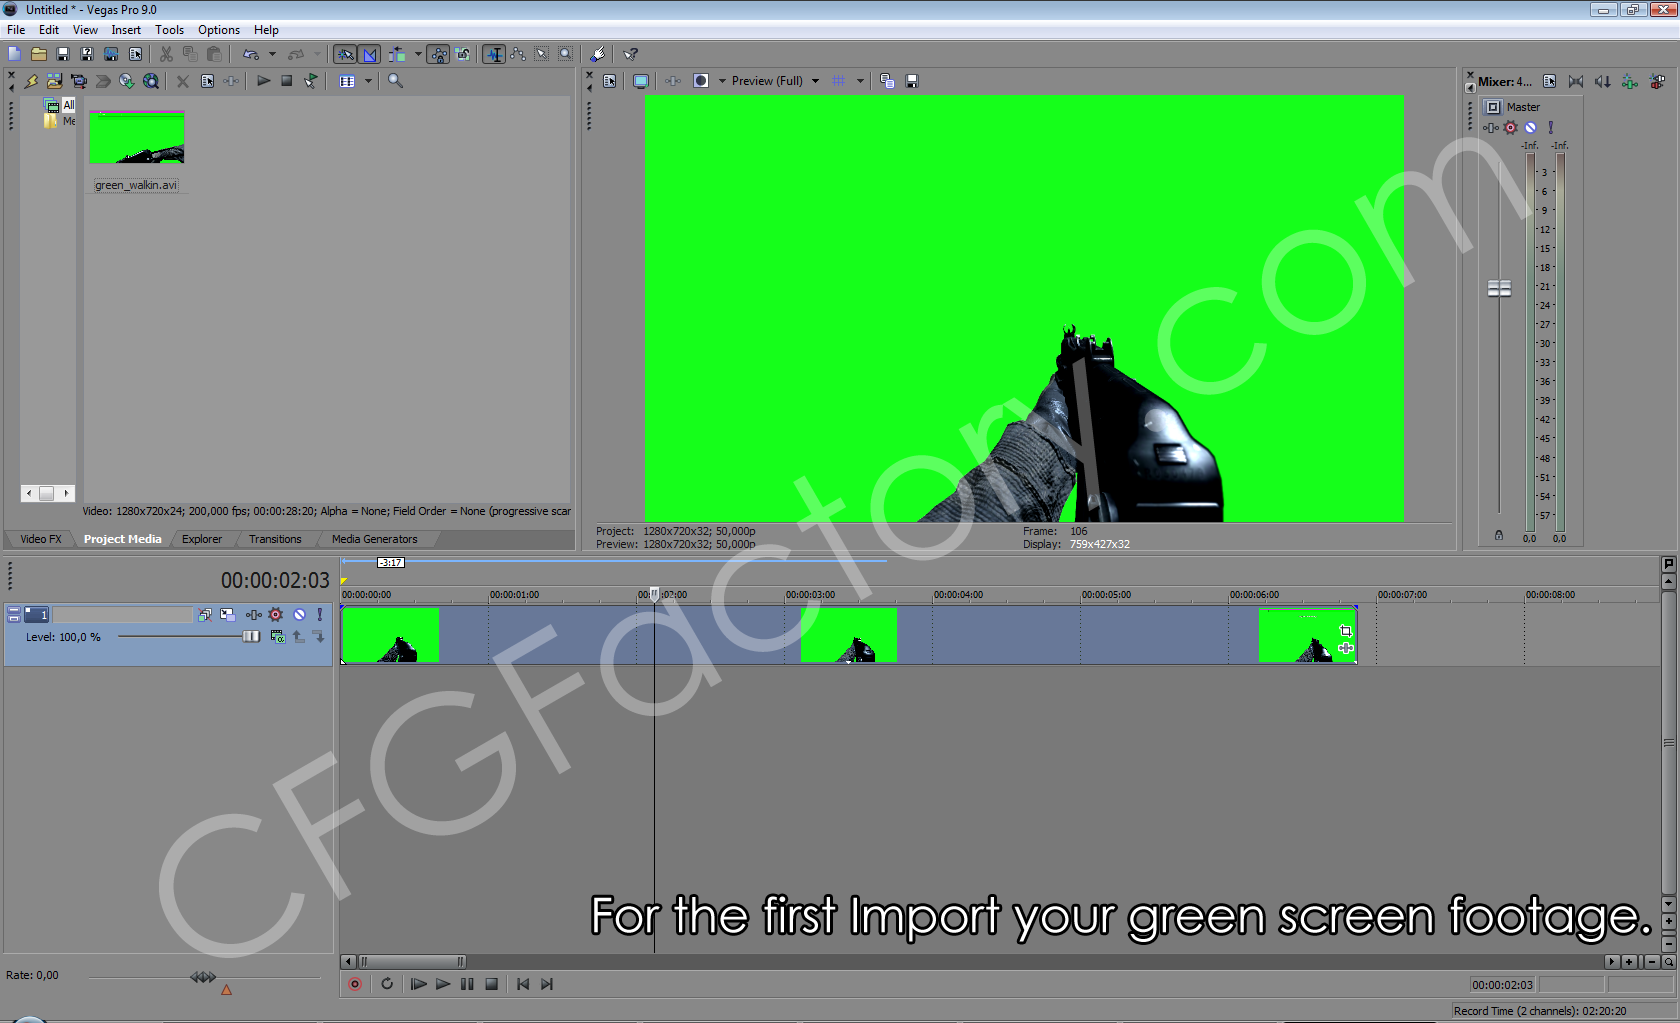 green_screen_1.png